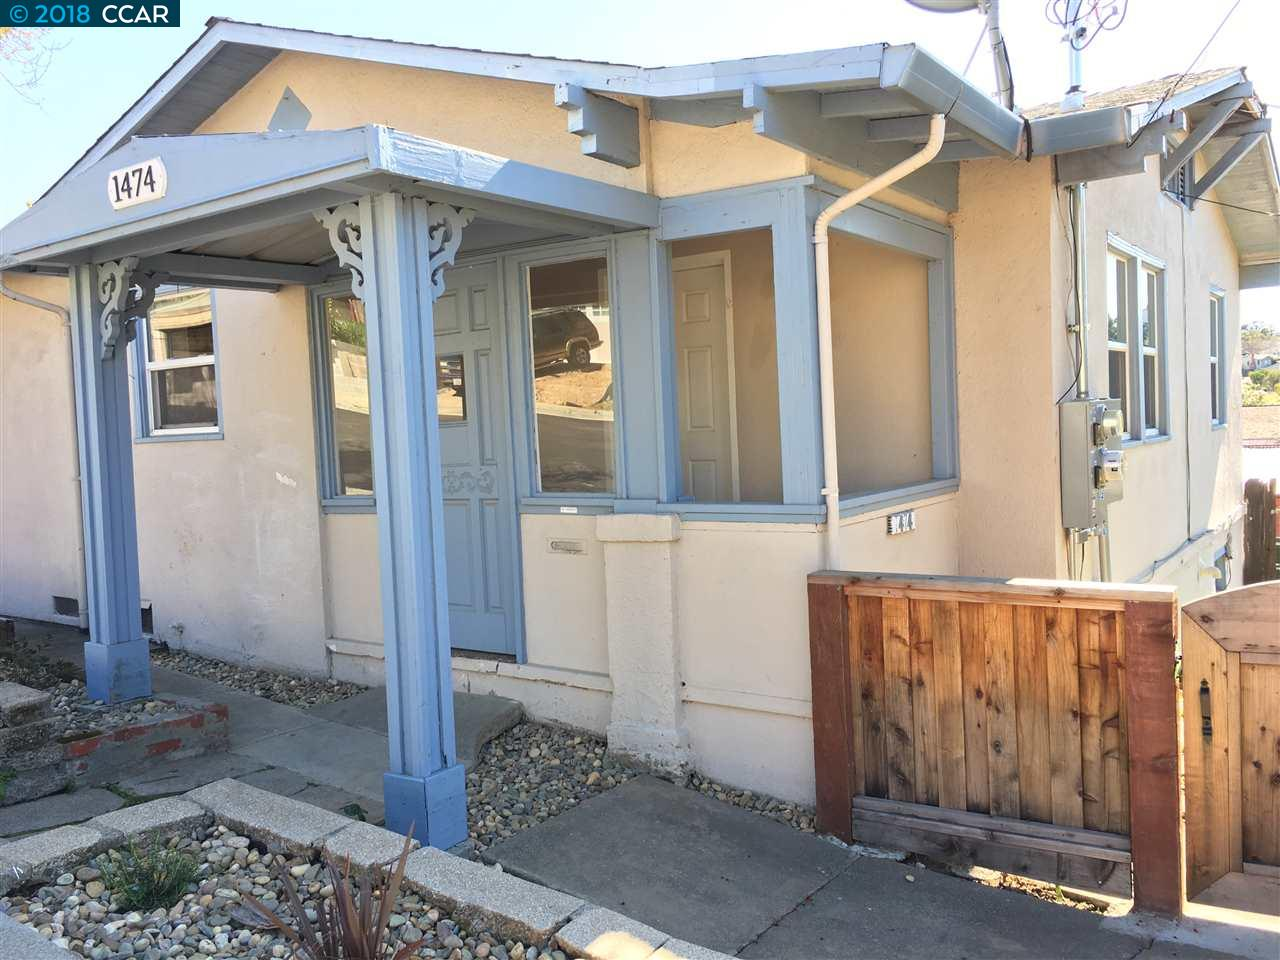 Single Family Home for Rent at 1474 Beech Street 1474 Beech Street Martinez, California 94553 United States